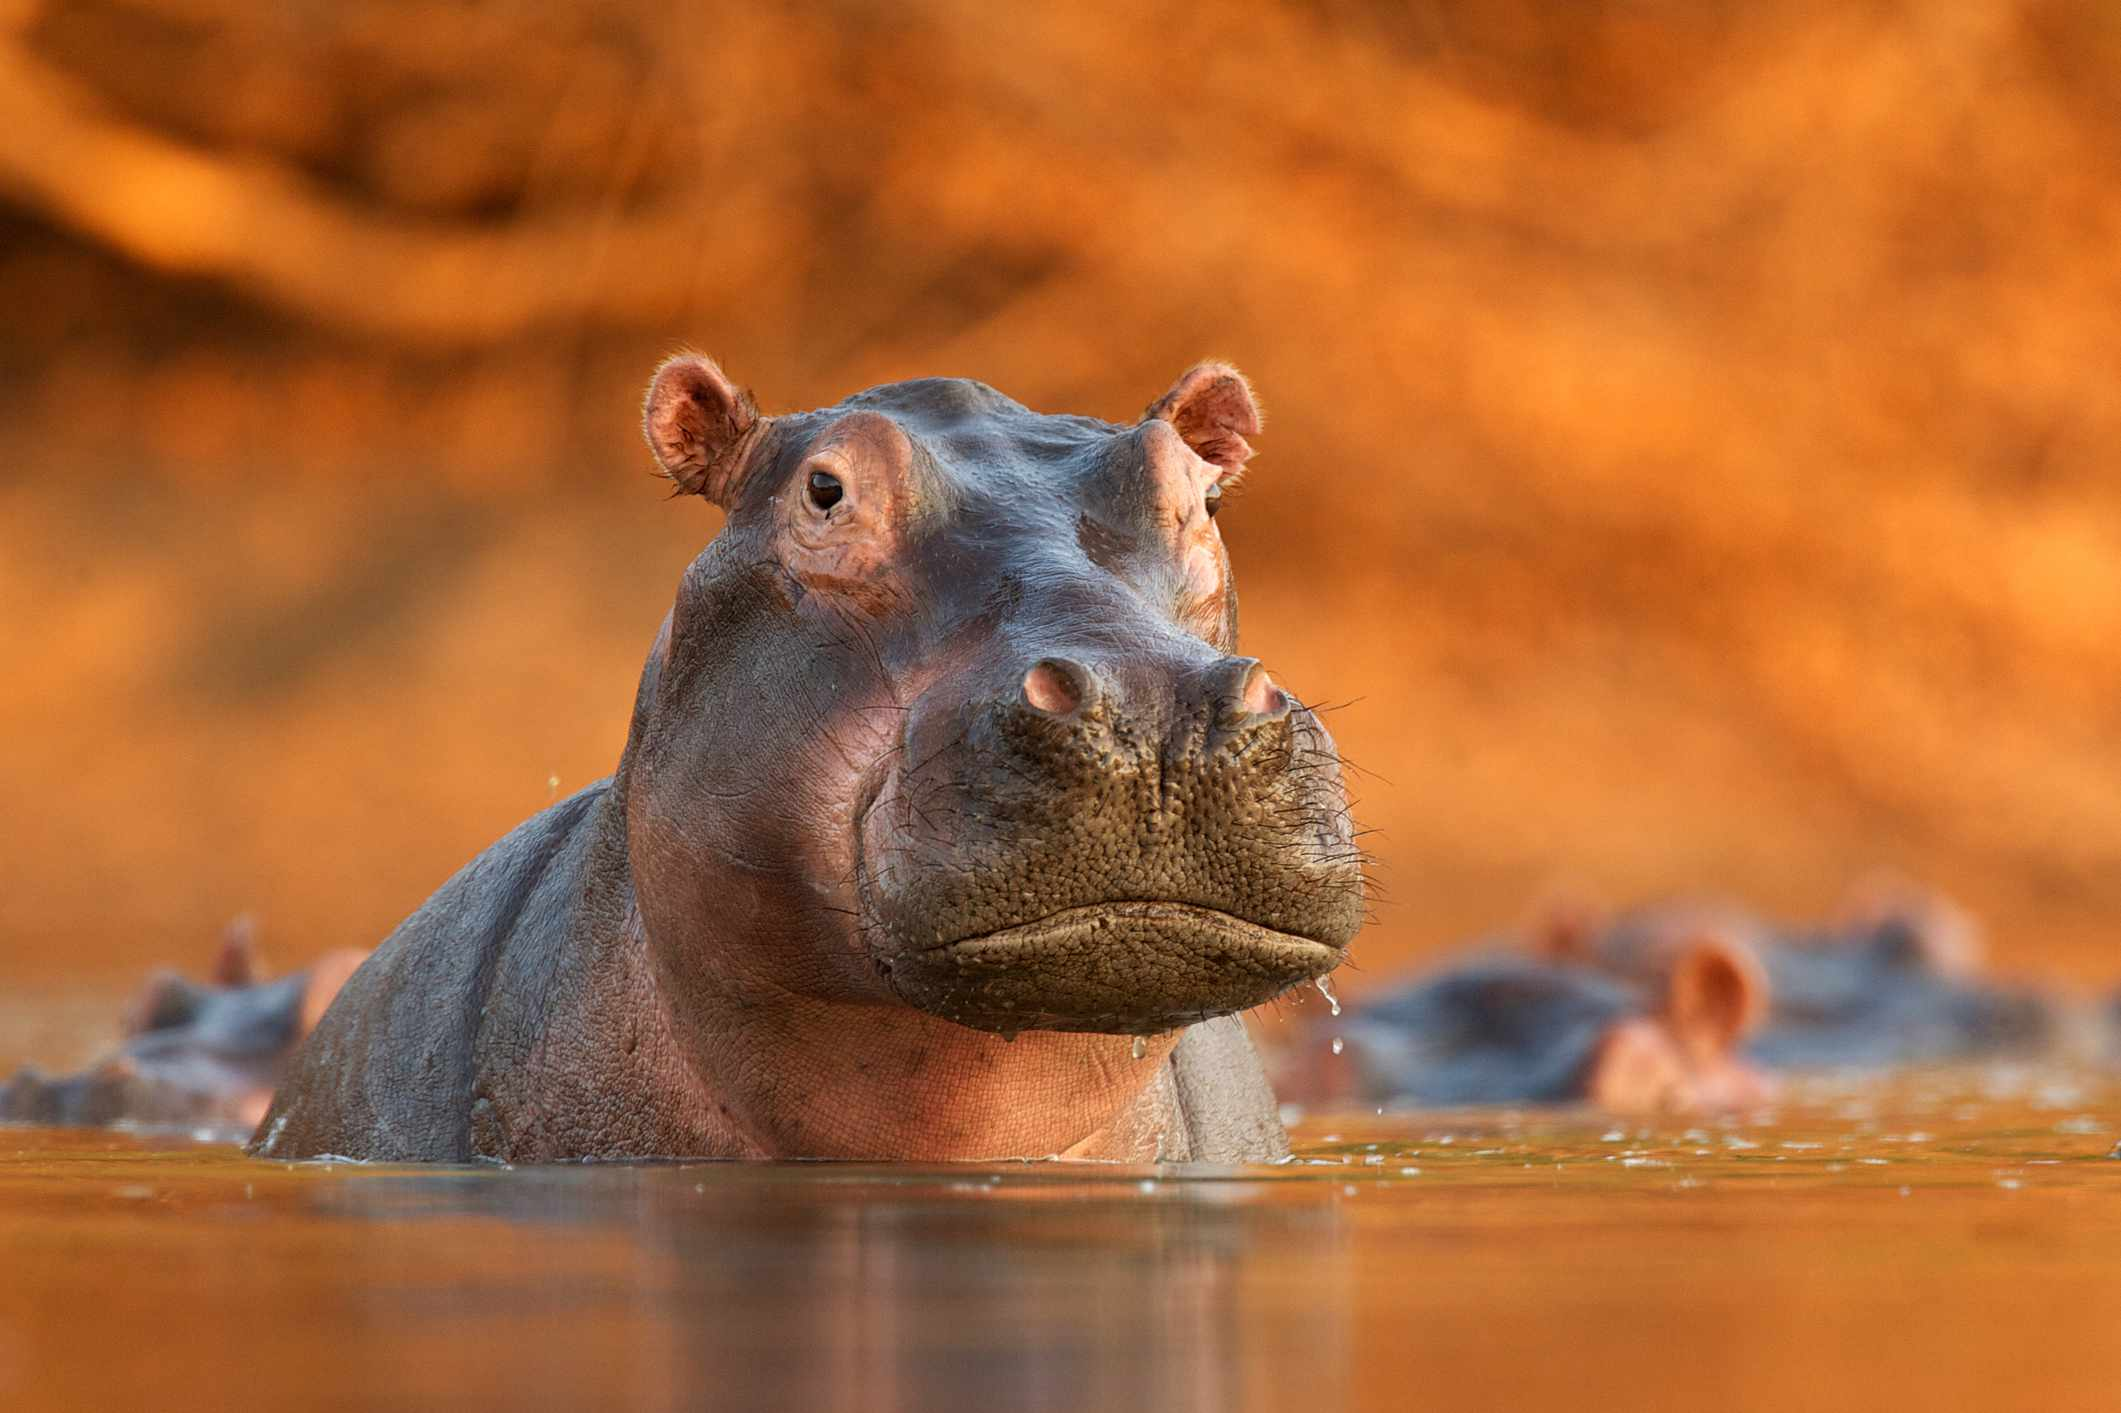 Hippo rising from a river